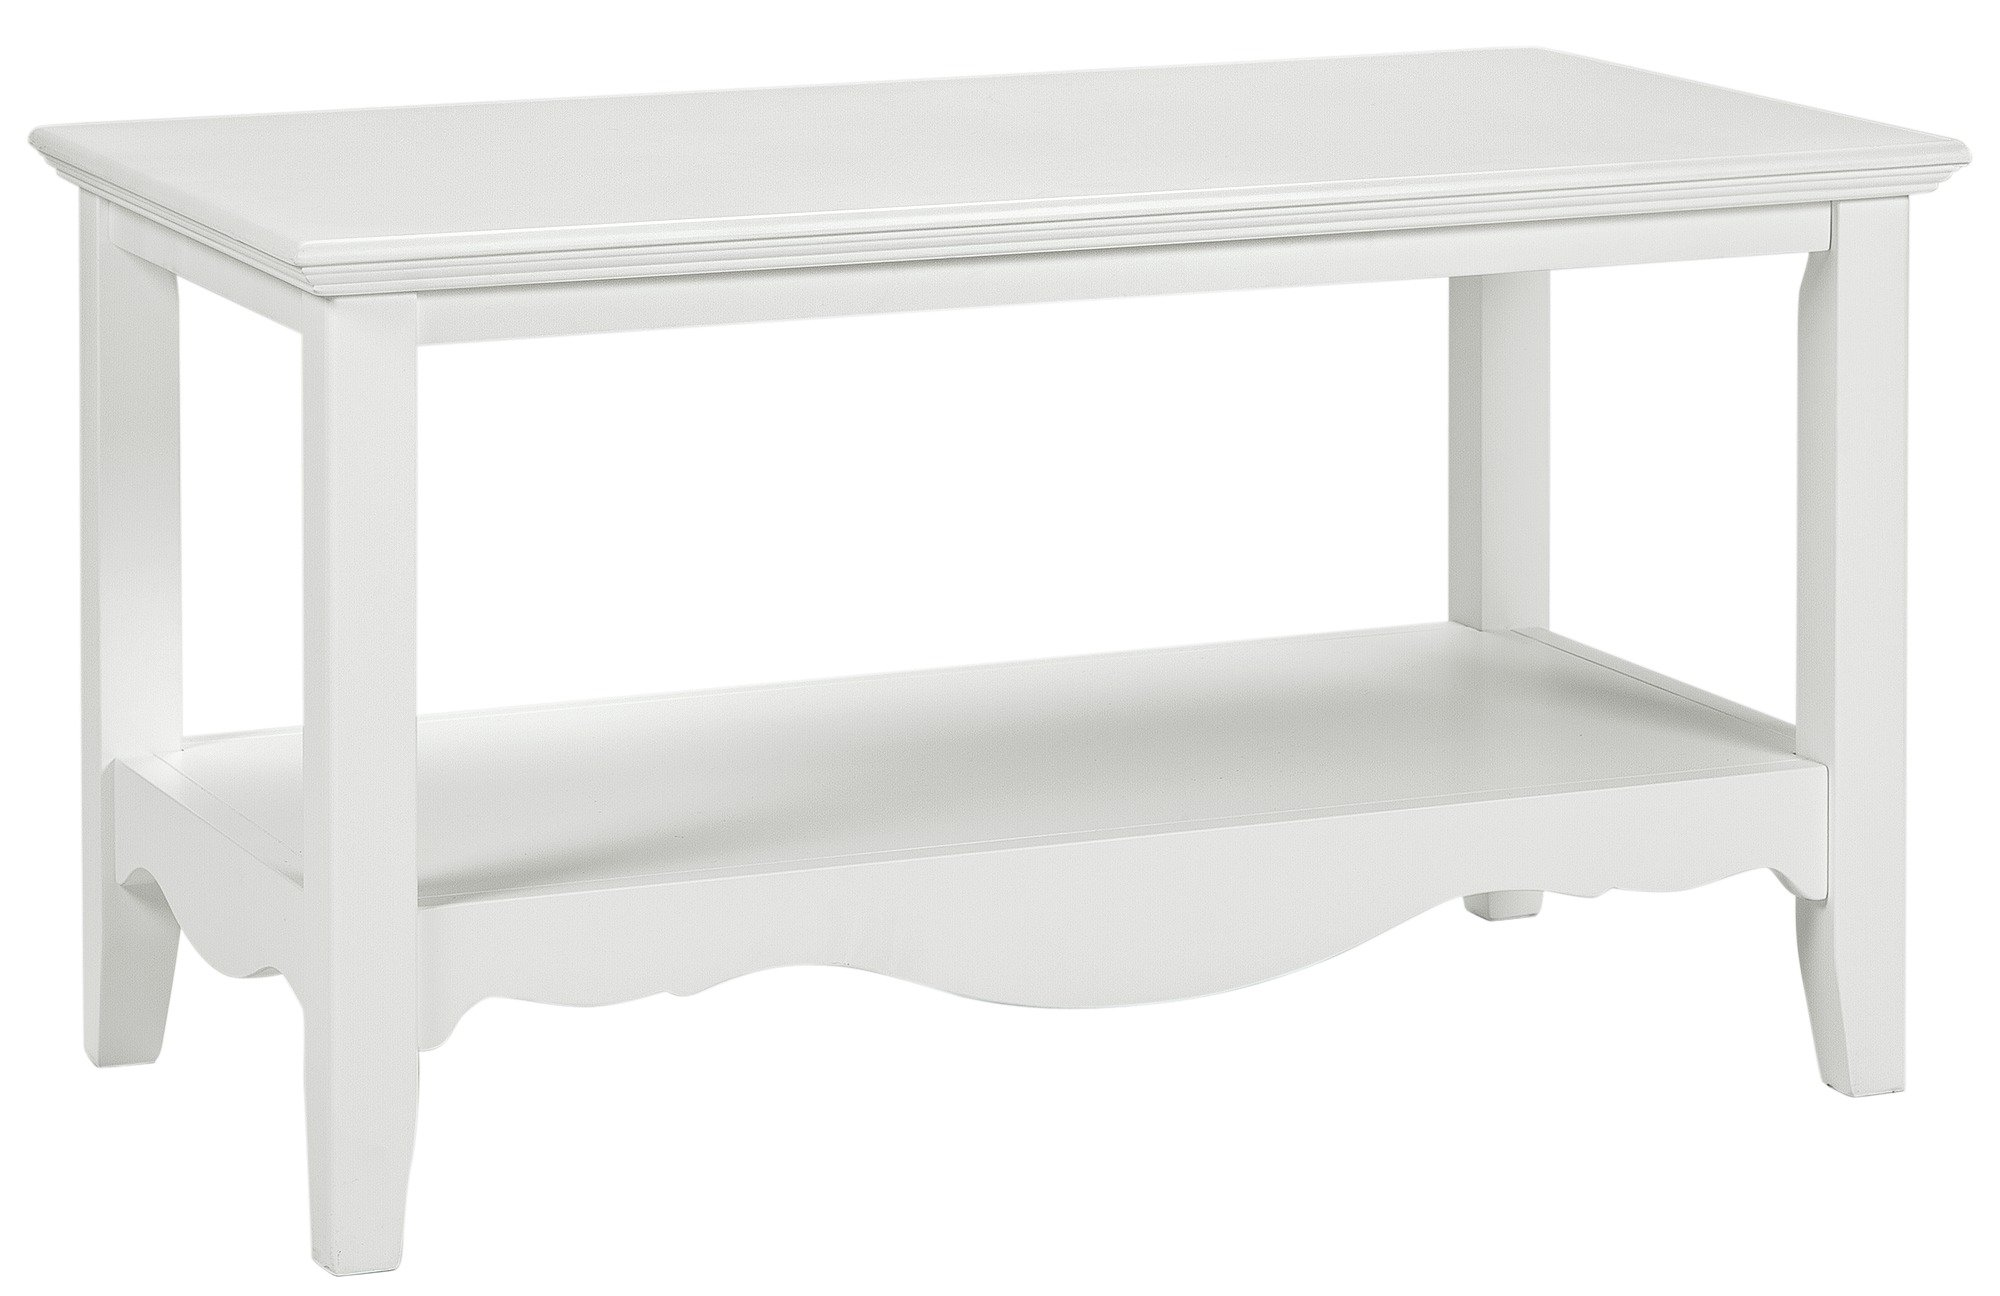 Image of Collection - Romantic - Coffee Table - White